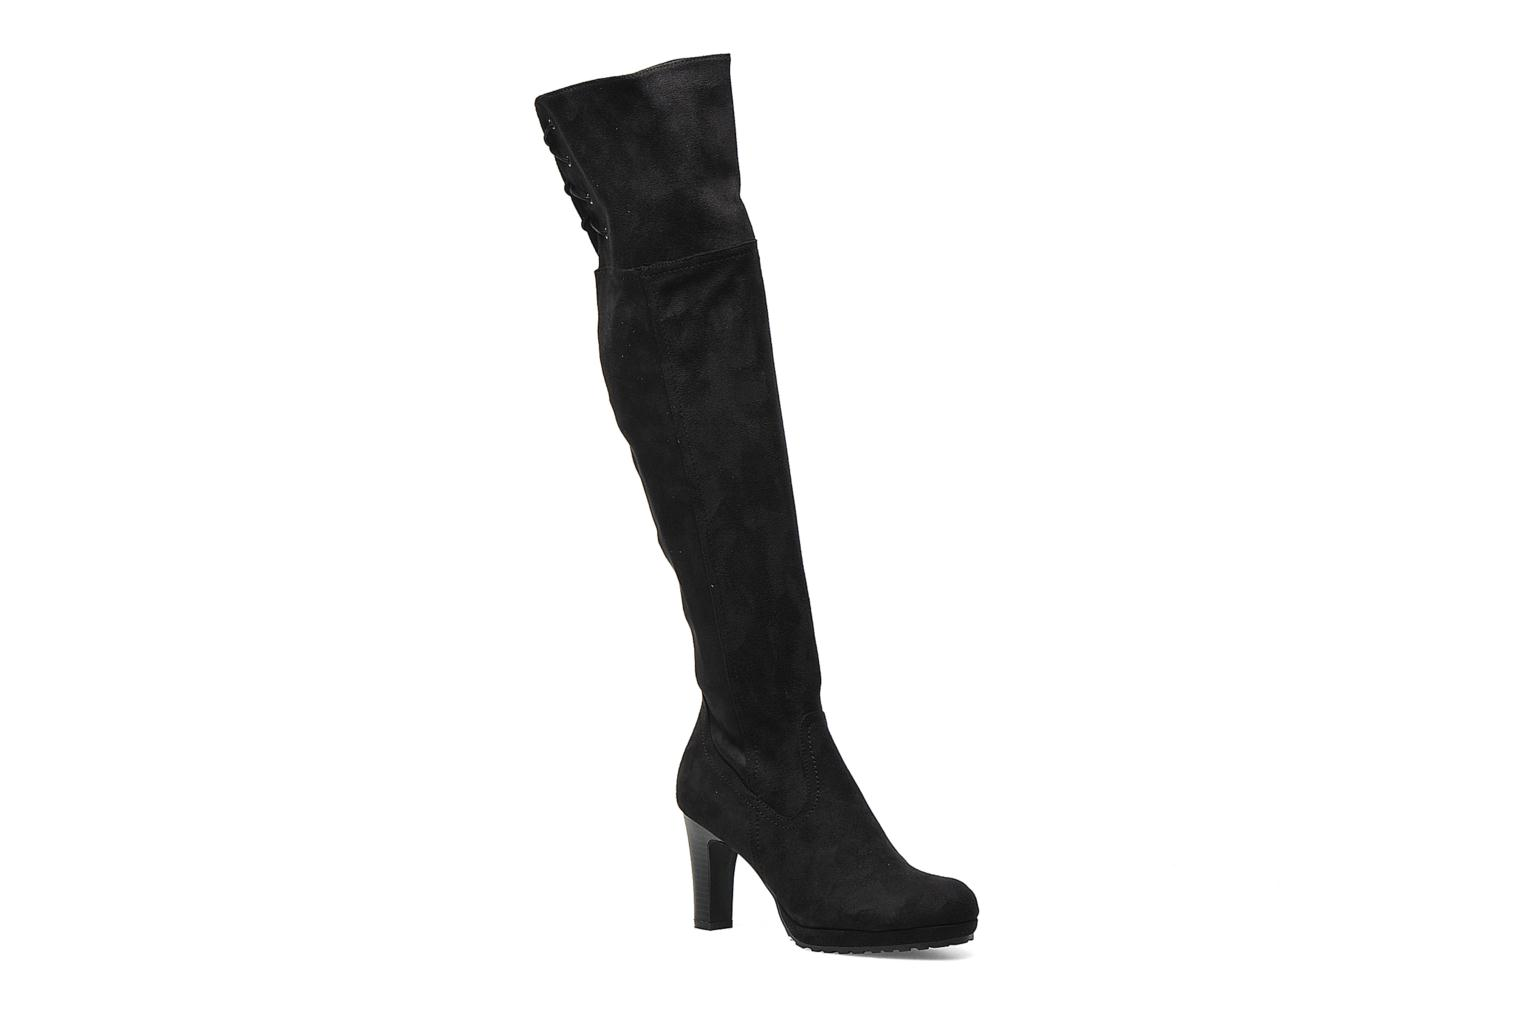 Georgia Rose - Damen - Kristolyn stretch - Stiefel - schwarz EvCc6Gl